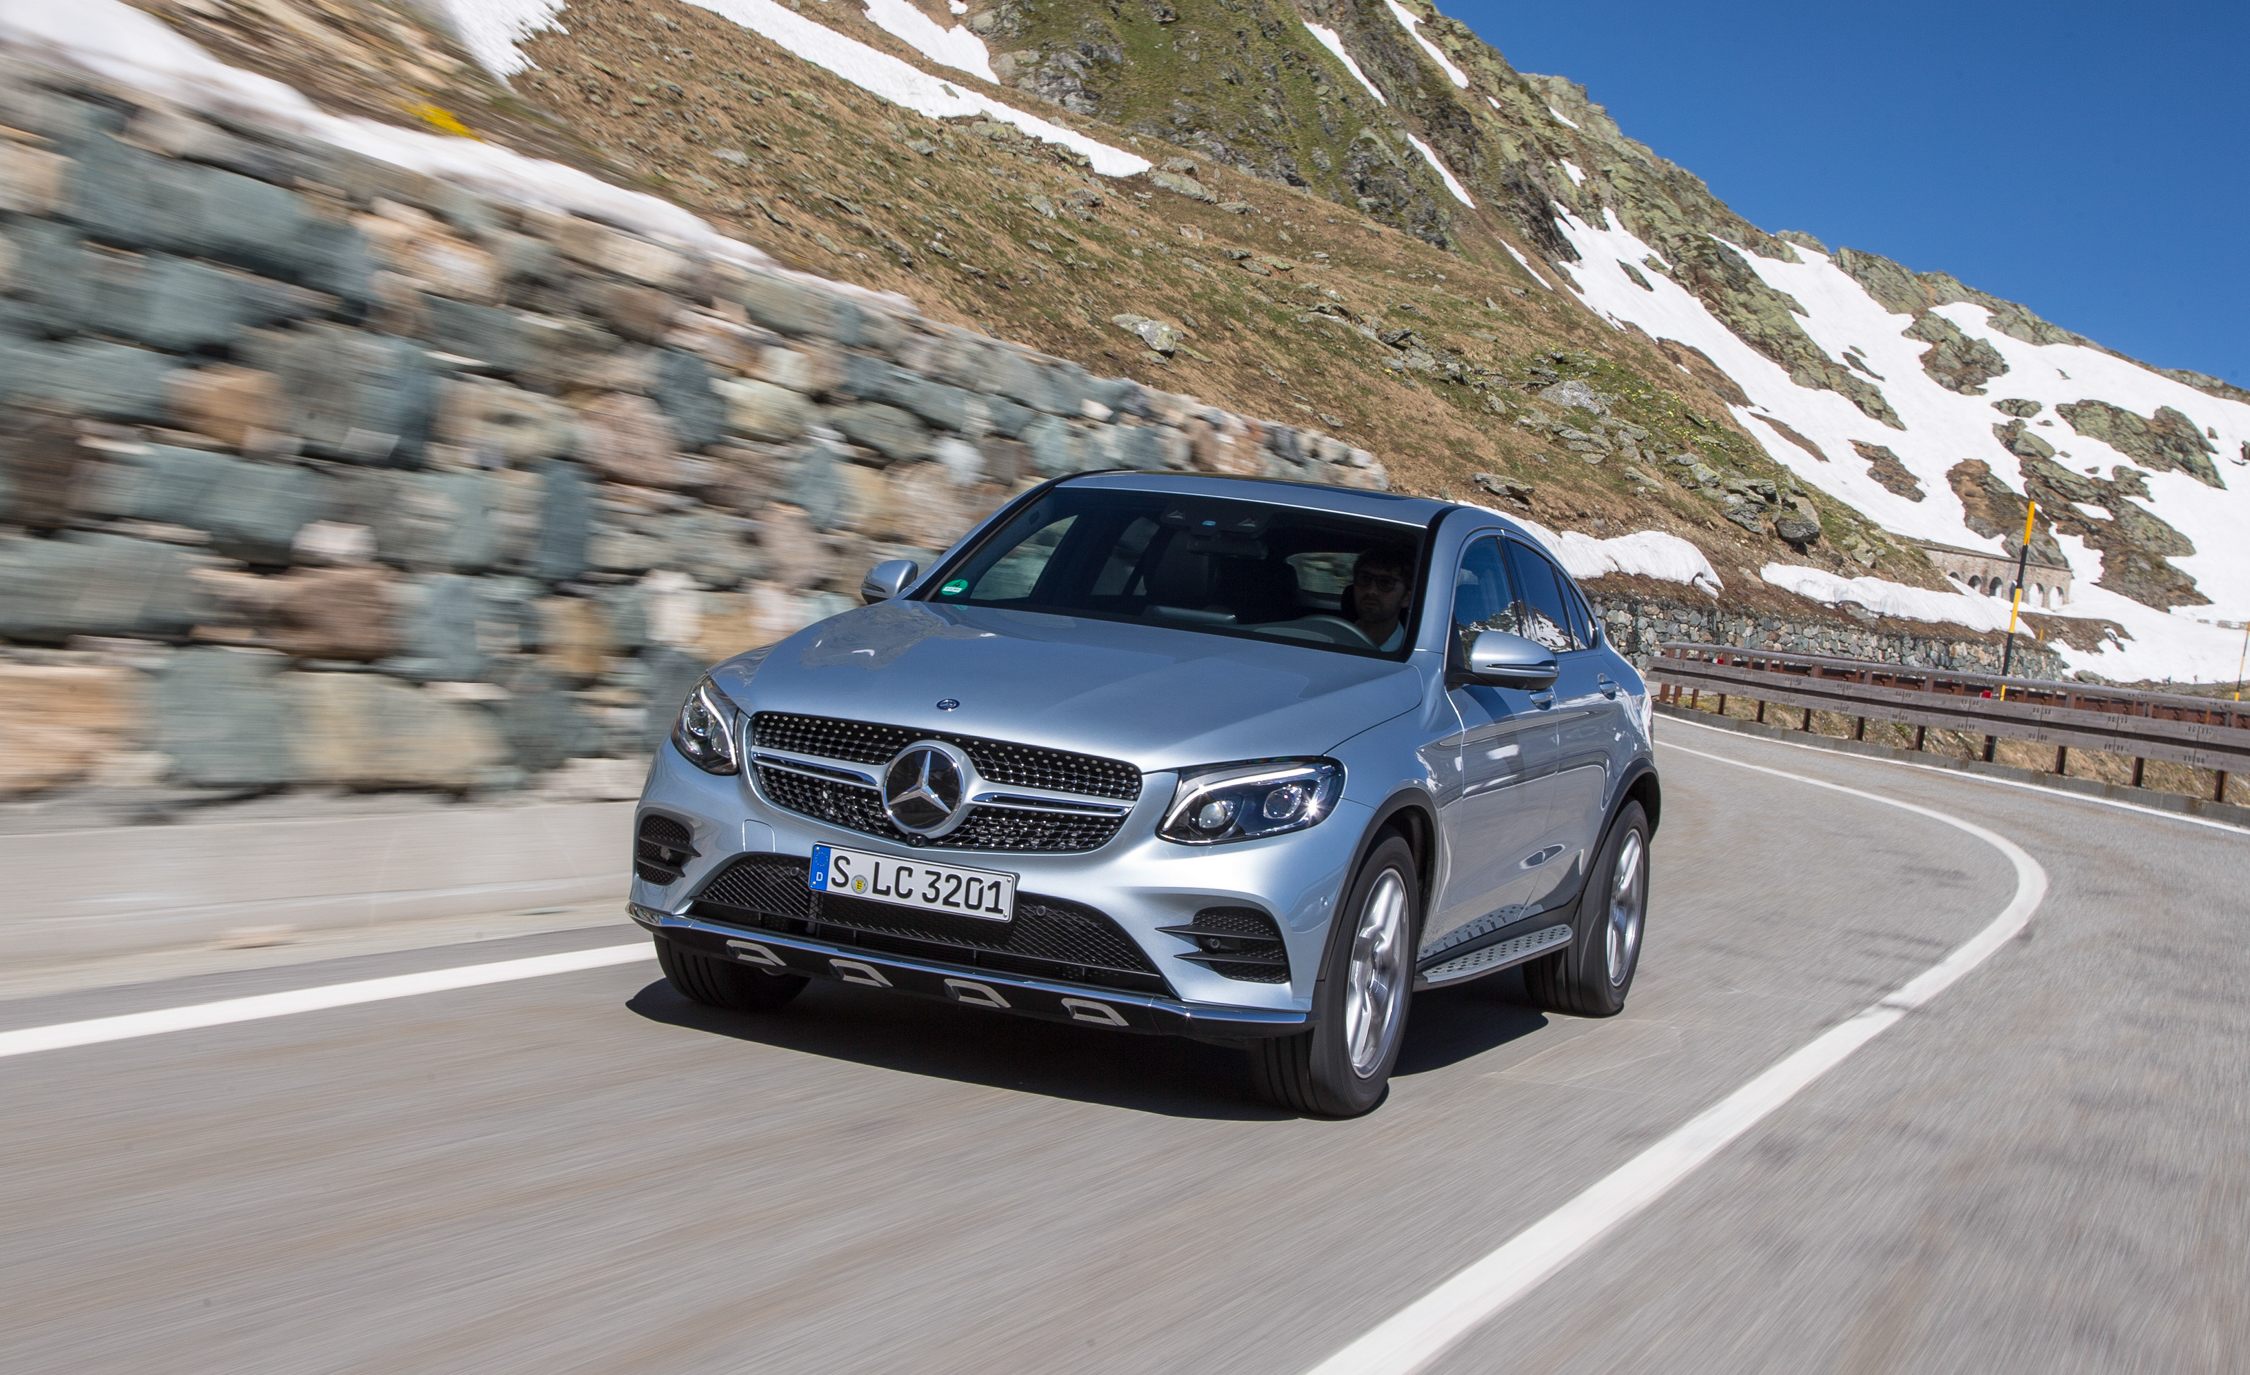 2017 Mercedes Benz GLC300 4MATIC Coupe (Photo 3 of 19)